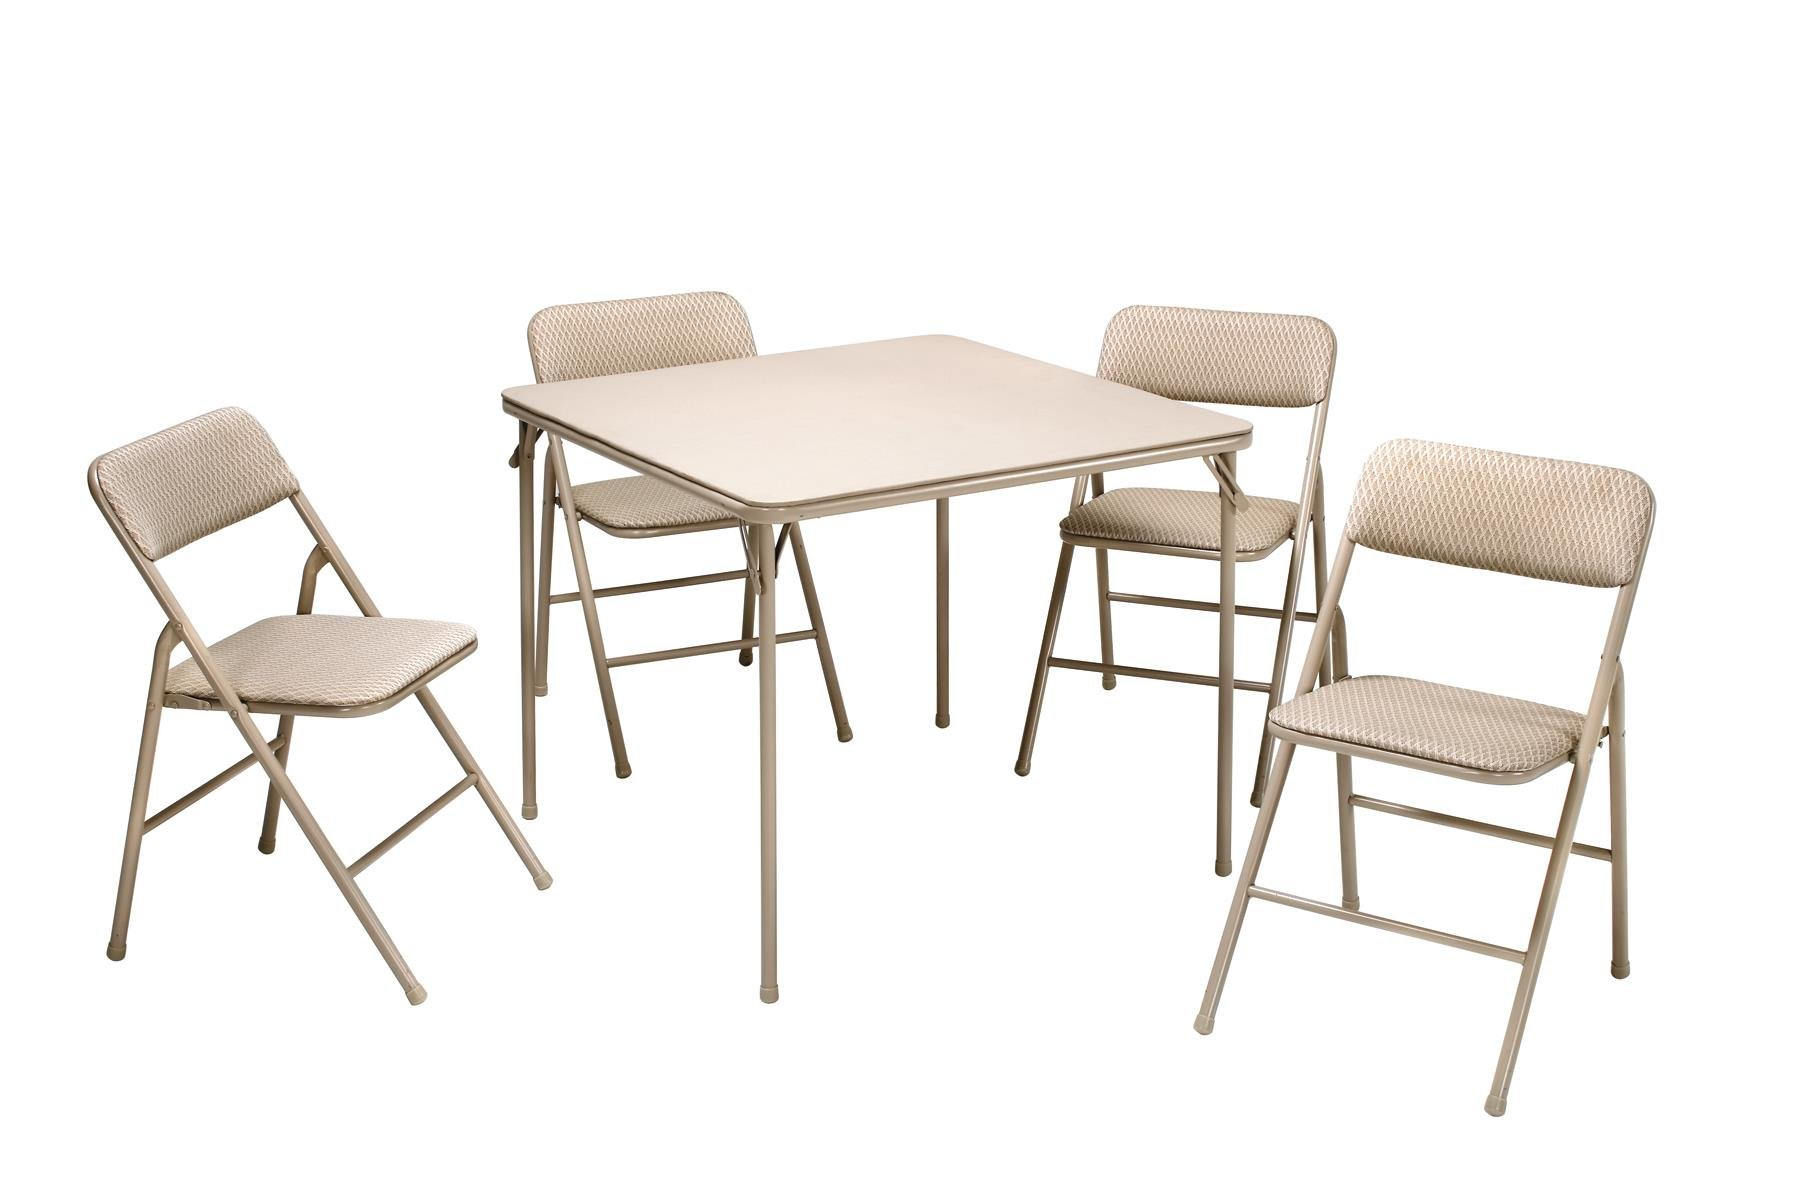 Cosco 5-Piece Folding Table and Chair Set, Tan Wheat Diamond by Cosco